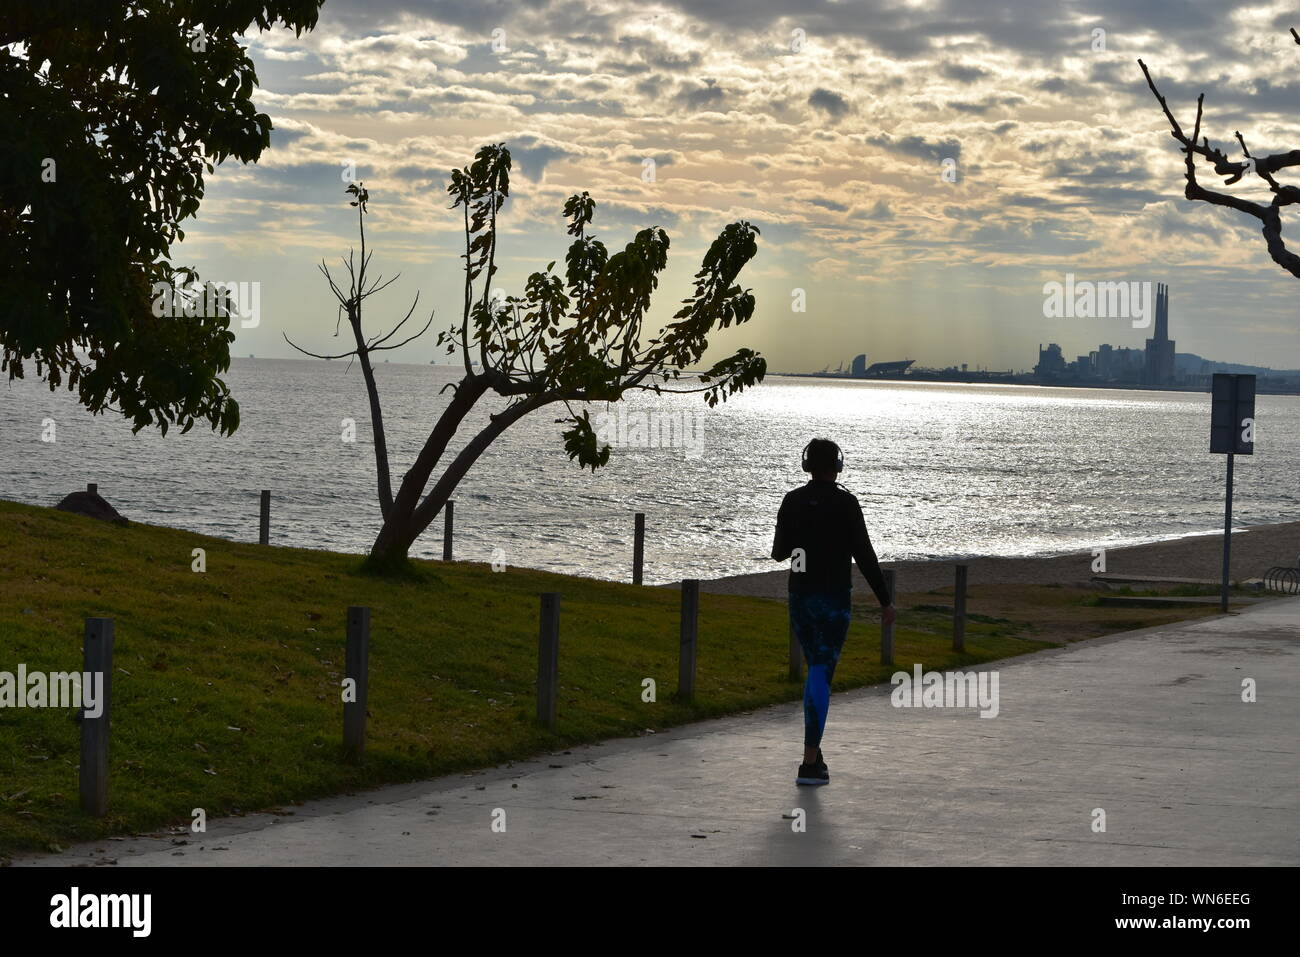 Rear View Of Woman Walking On Promenade Against Sky During Sunset Stock Photo